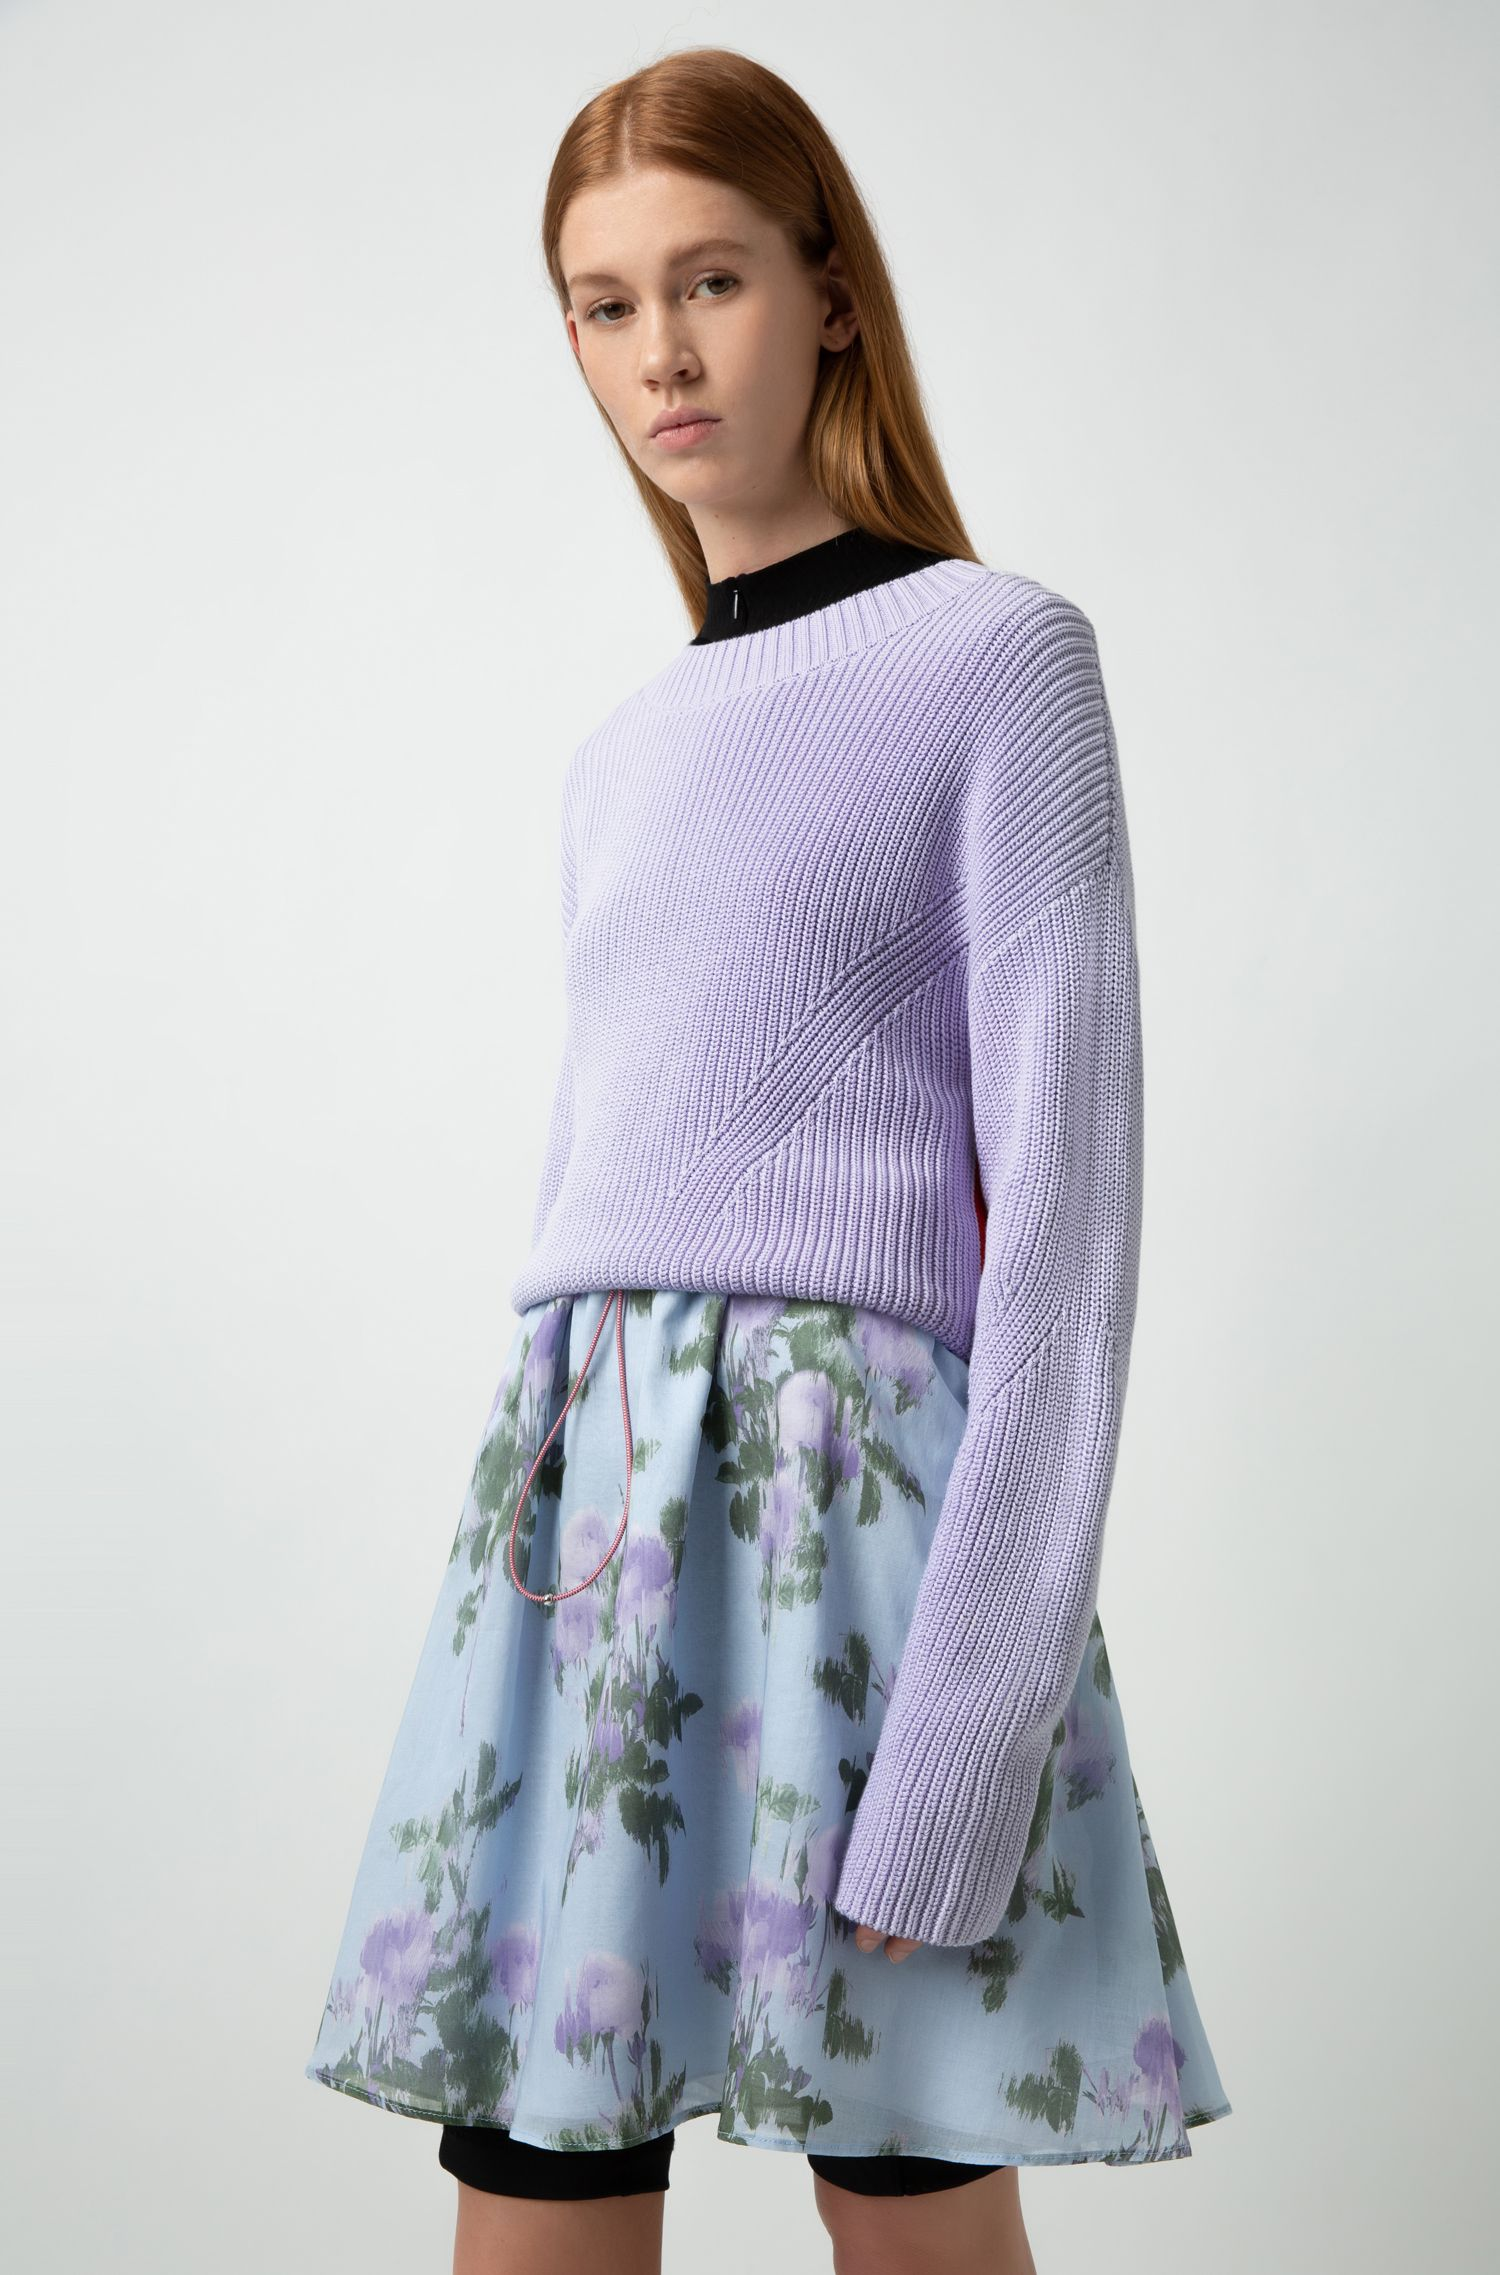 A-line skirt in lightweight floral-printed cotton, Patterned